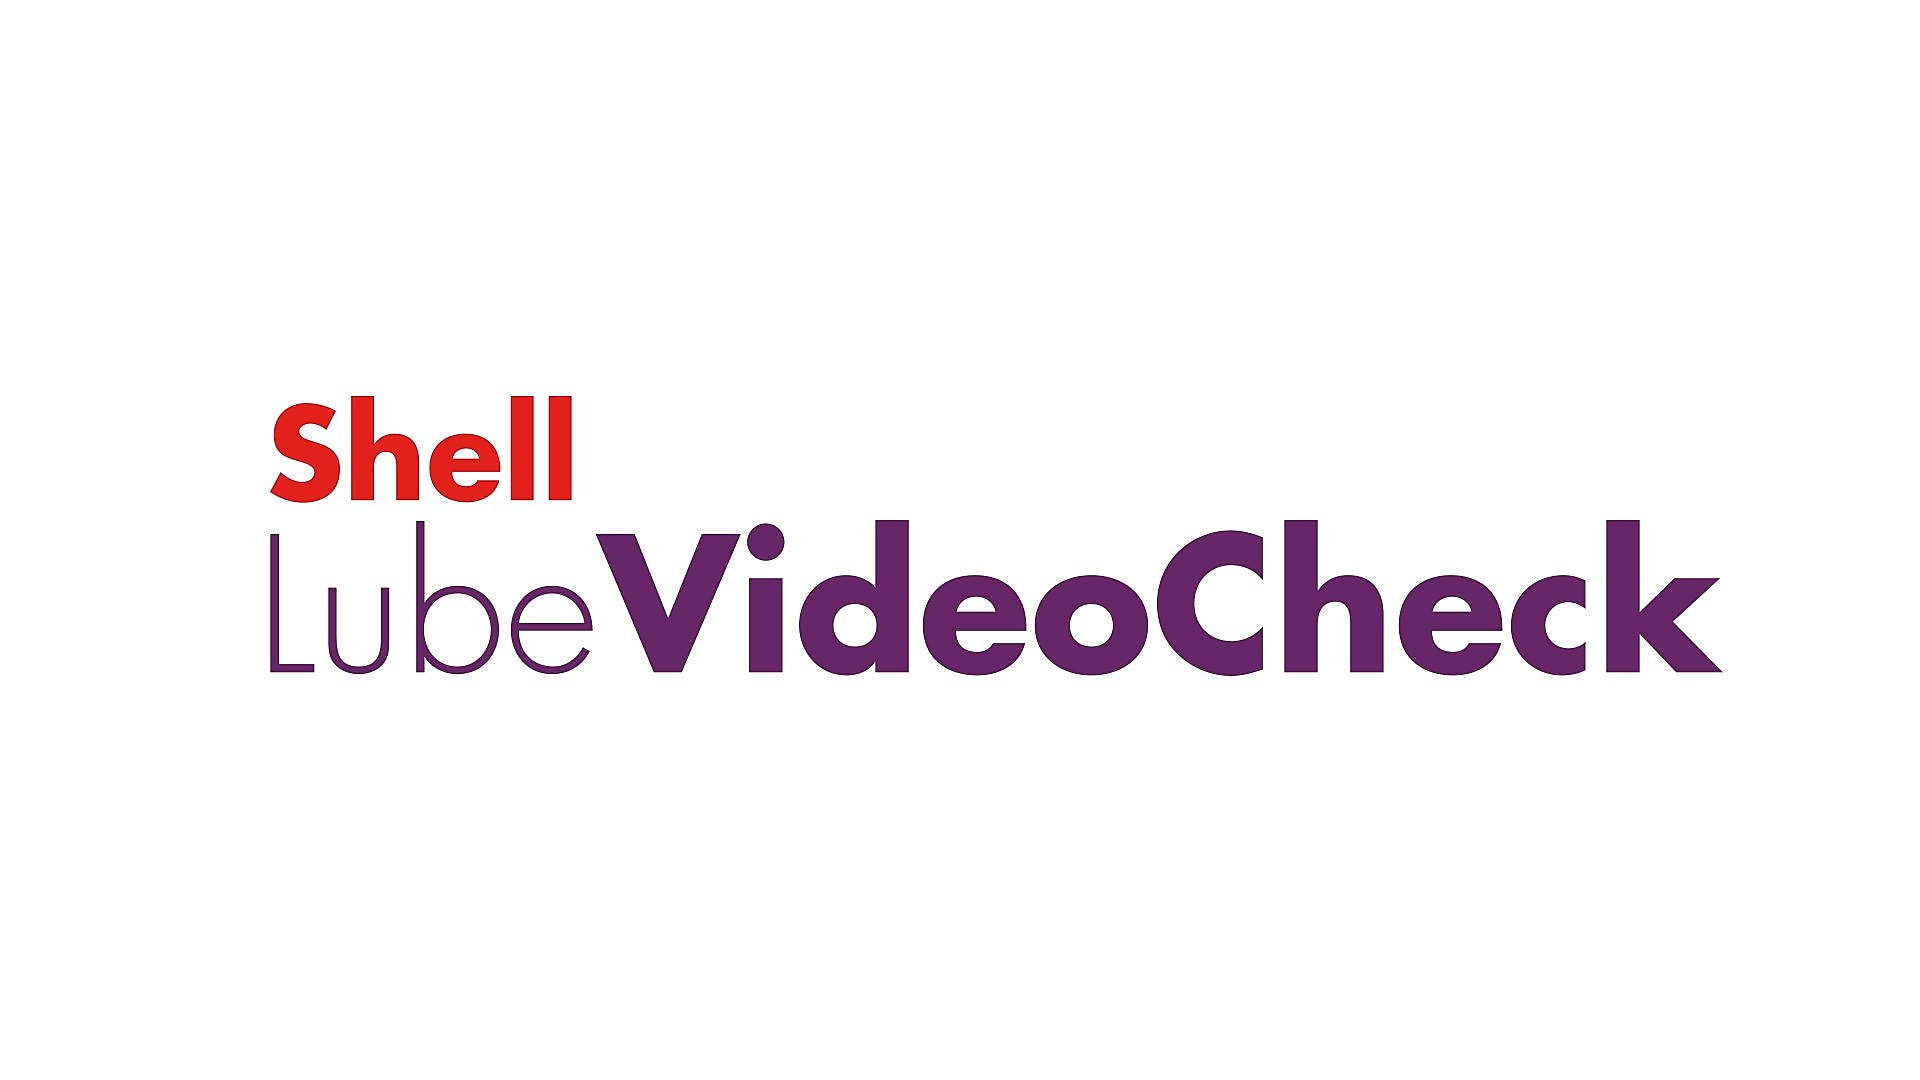 An image displaying the Shell LubeVideoCheck logo